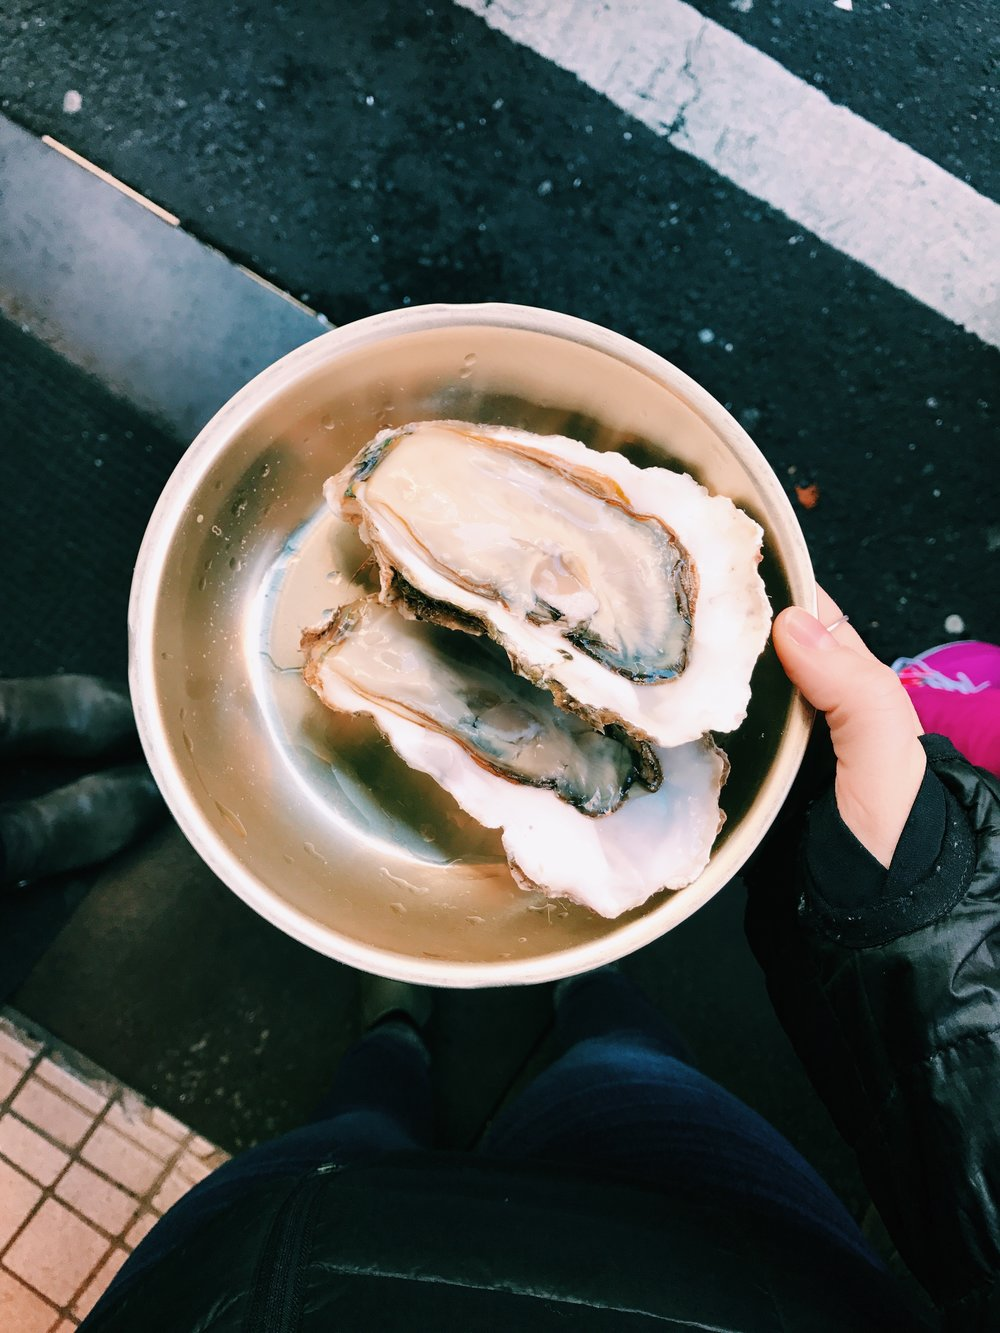 raw oysters the size of my hand.